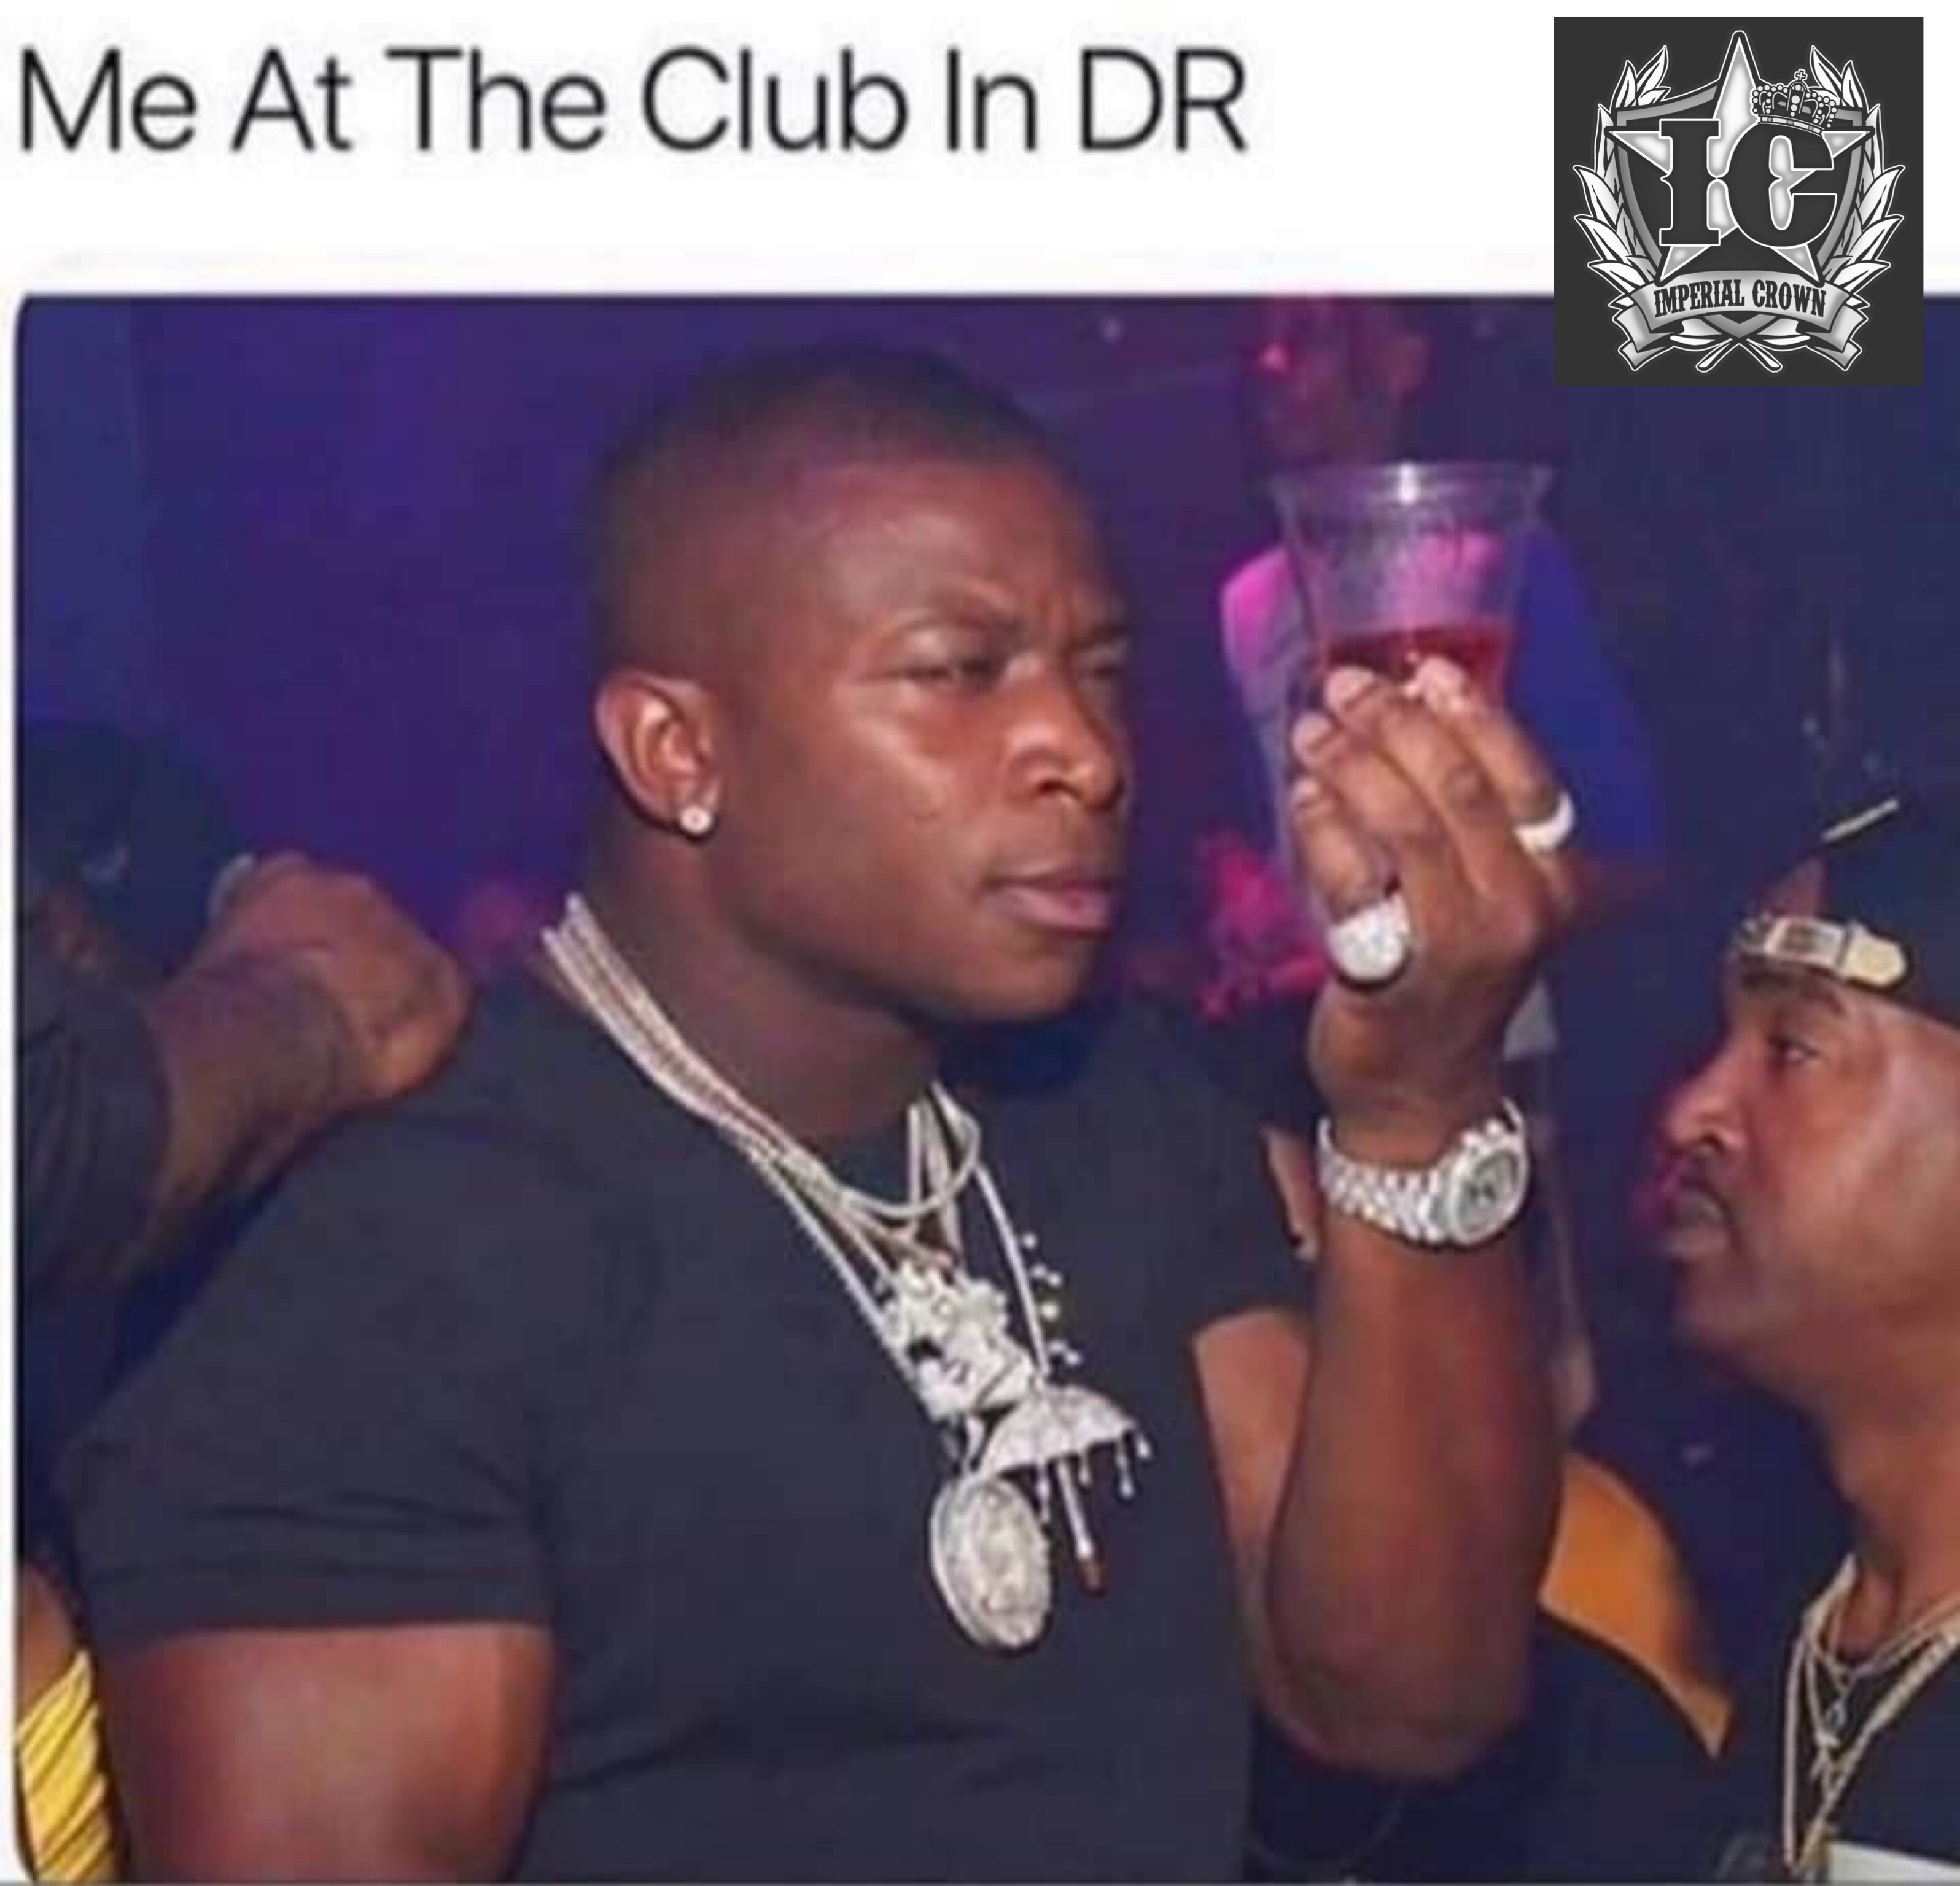 Me at the club in dr